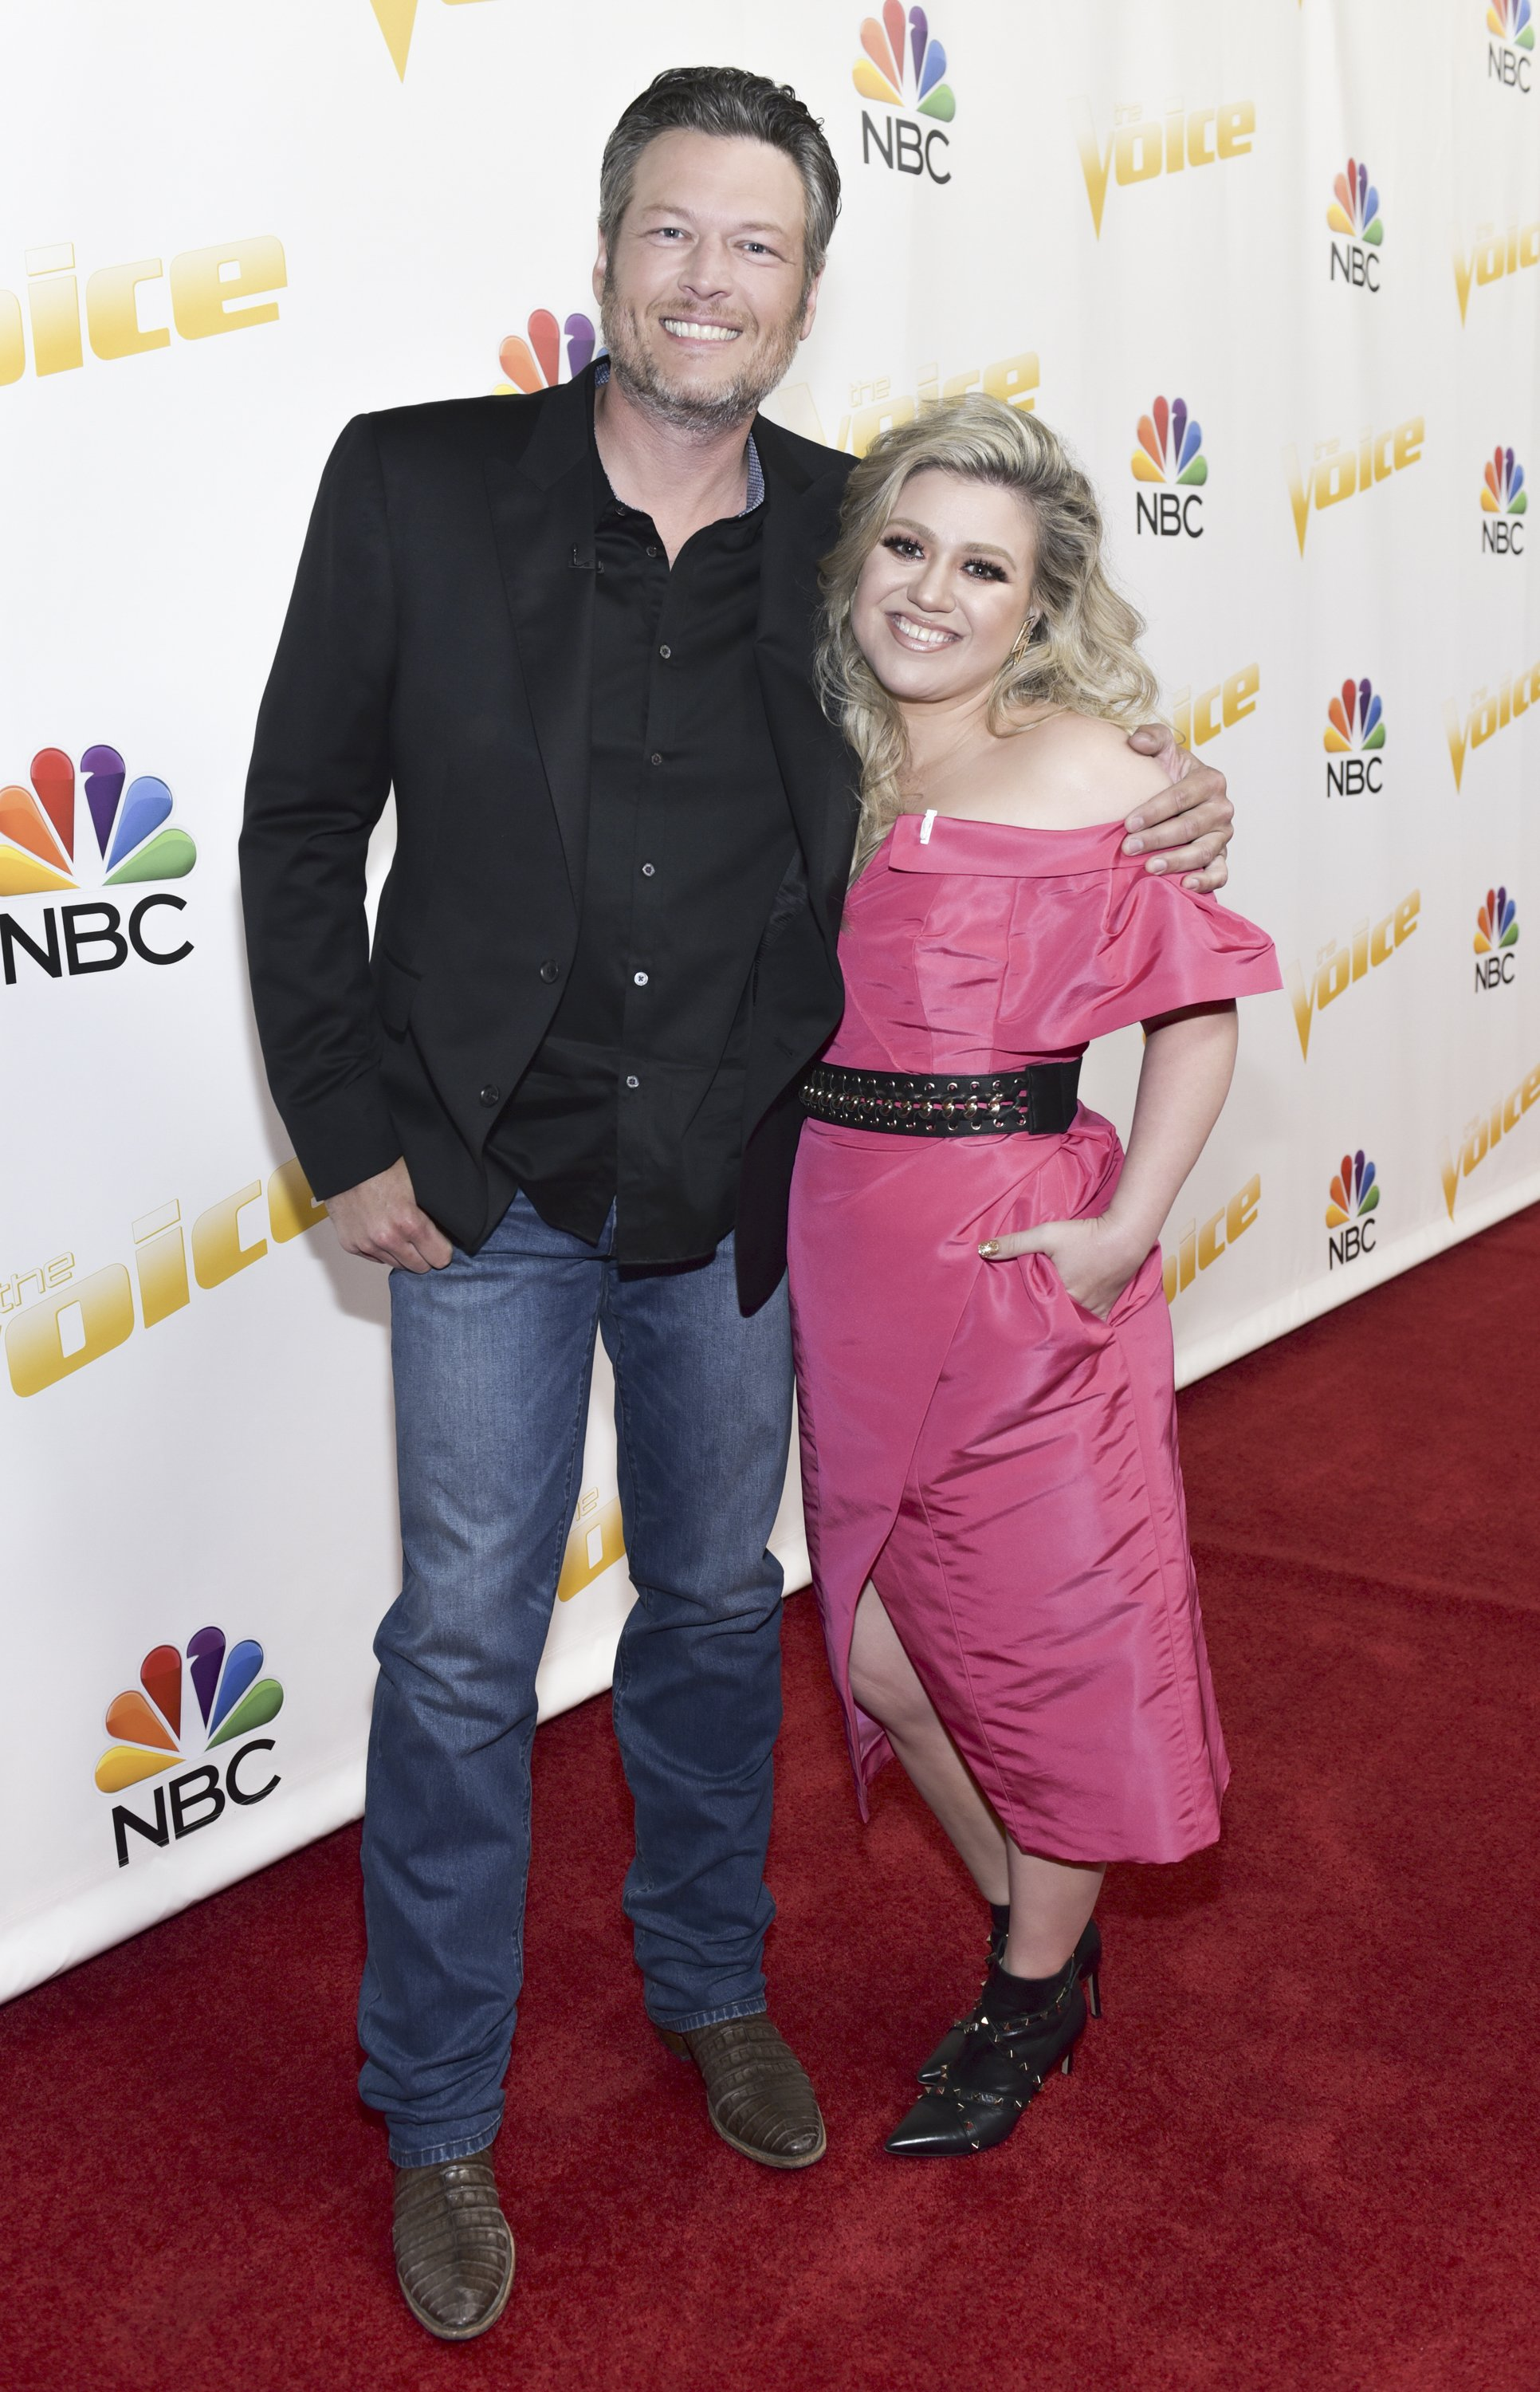 Blake Shelton and Kelly Clarkson posing for the cameras | Photo: Getty Images